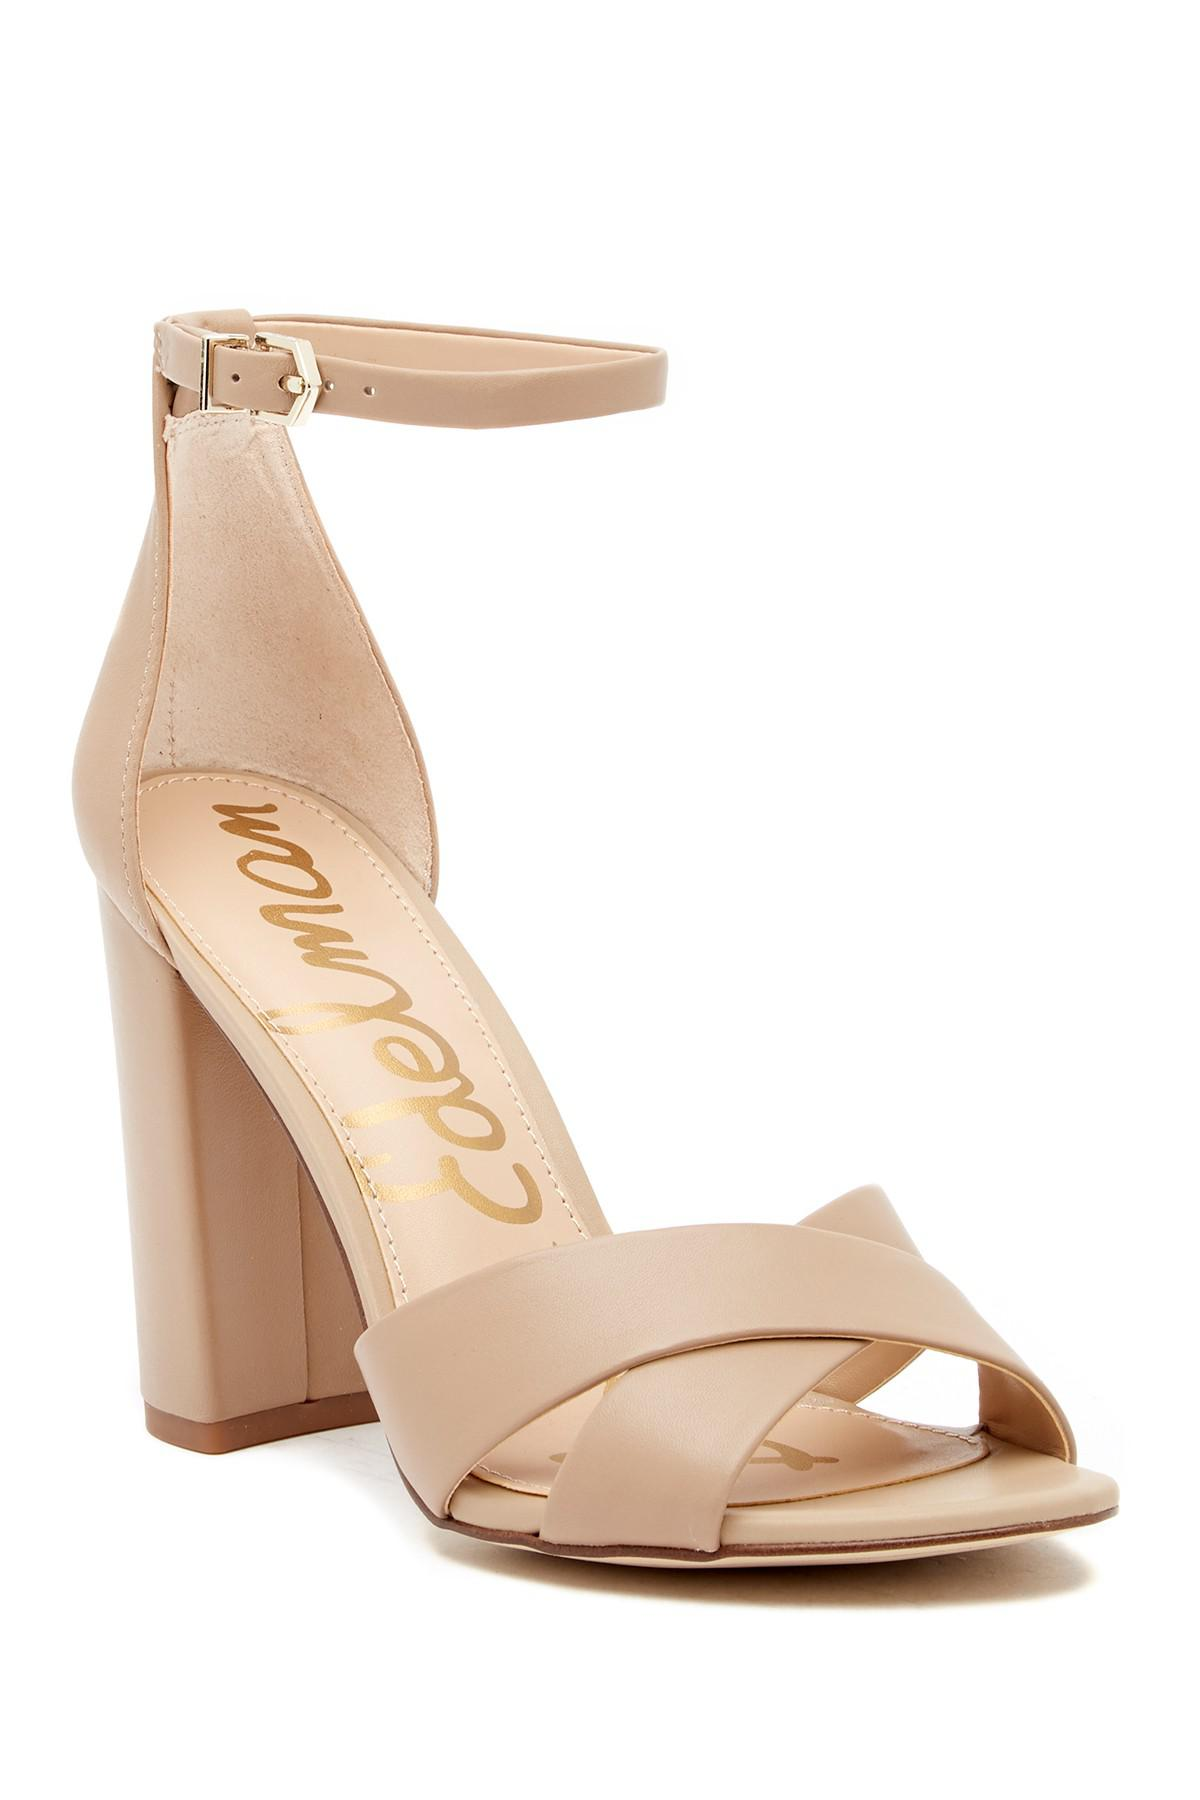 71dfed390e83d Lyst - Sam Edelman Yancy Crossover Strap Suede Sandals in Natural ...